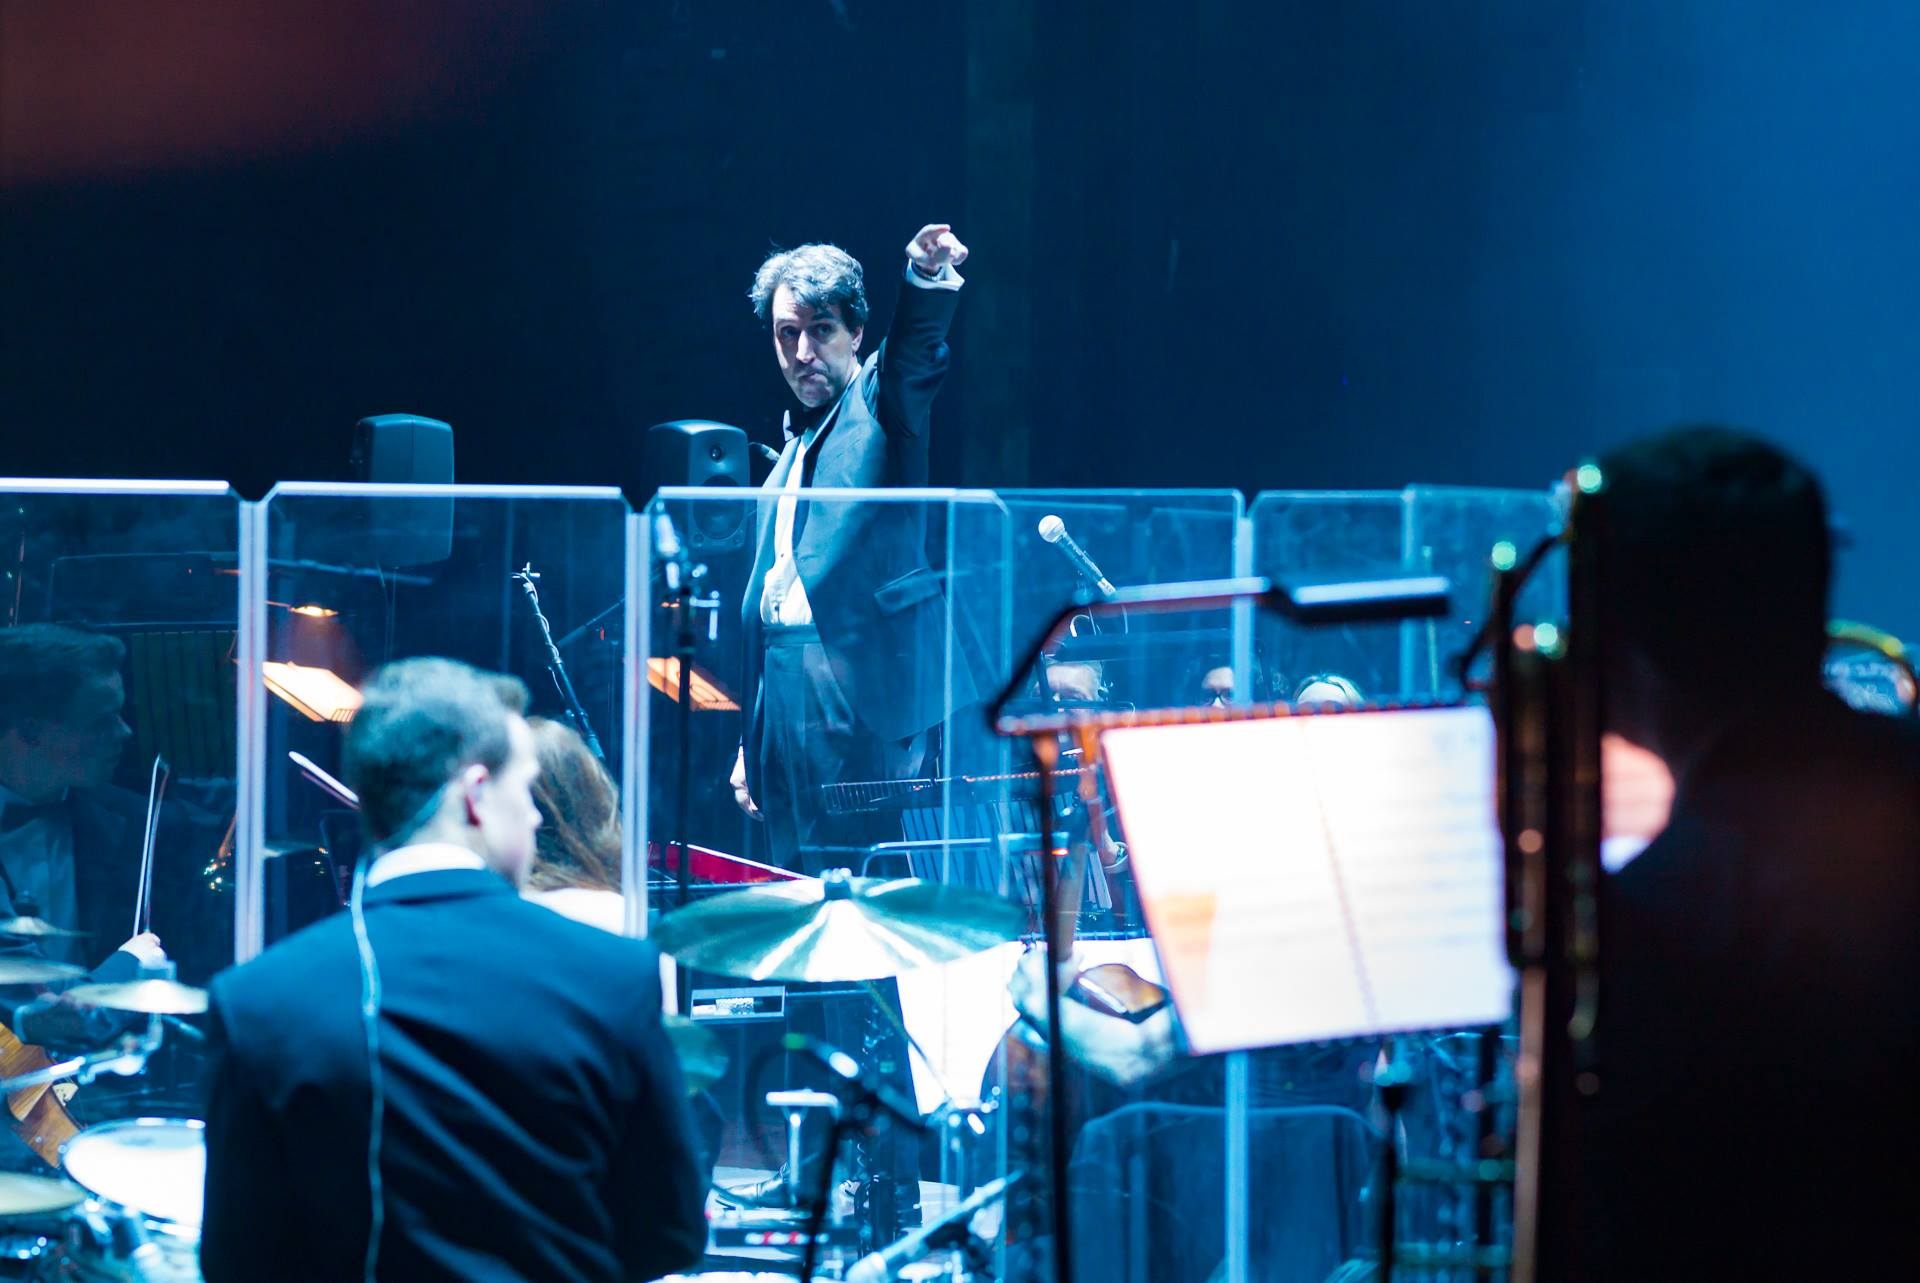 Jason Robert Brown is either telling the lead trumpet to take a bow, or telling me off. I hope it's the former.